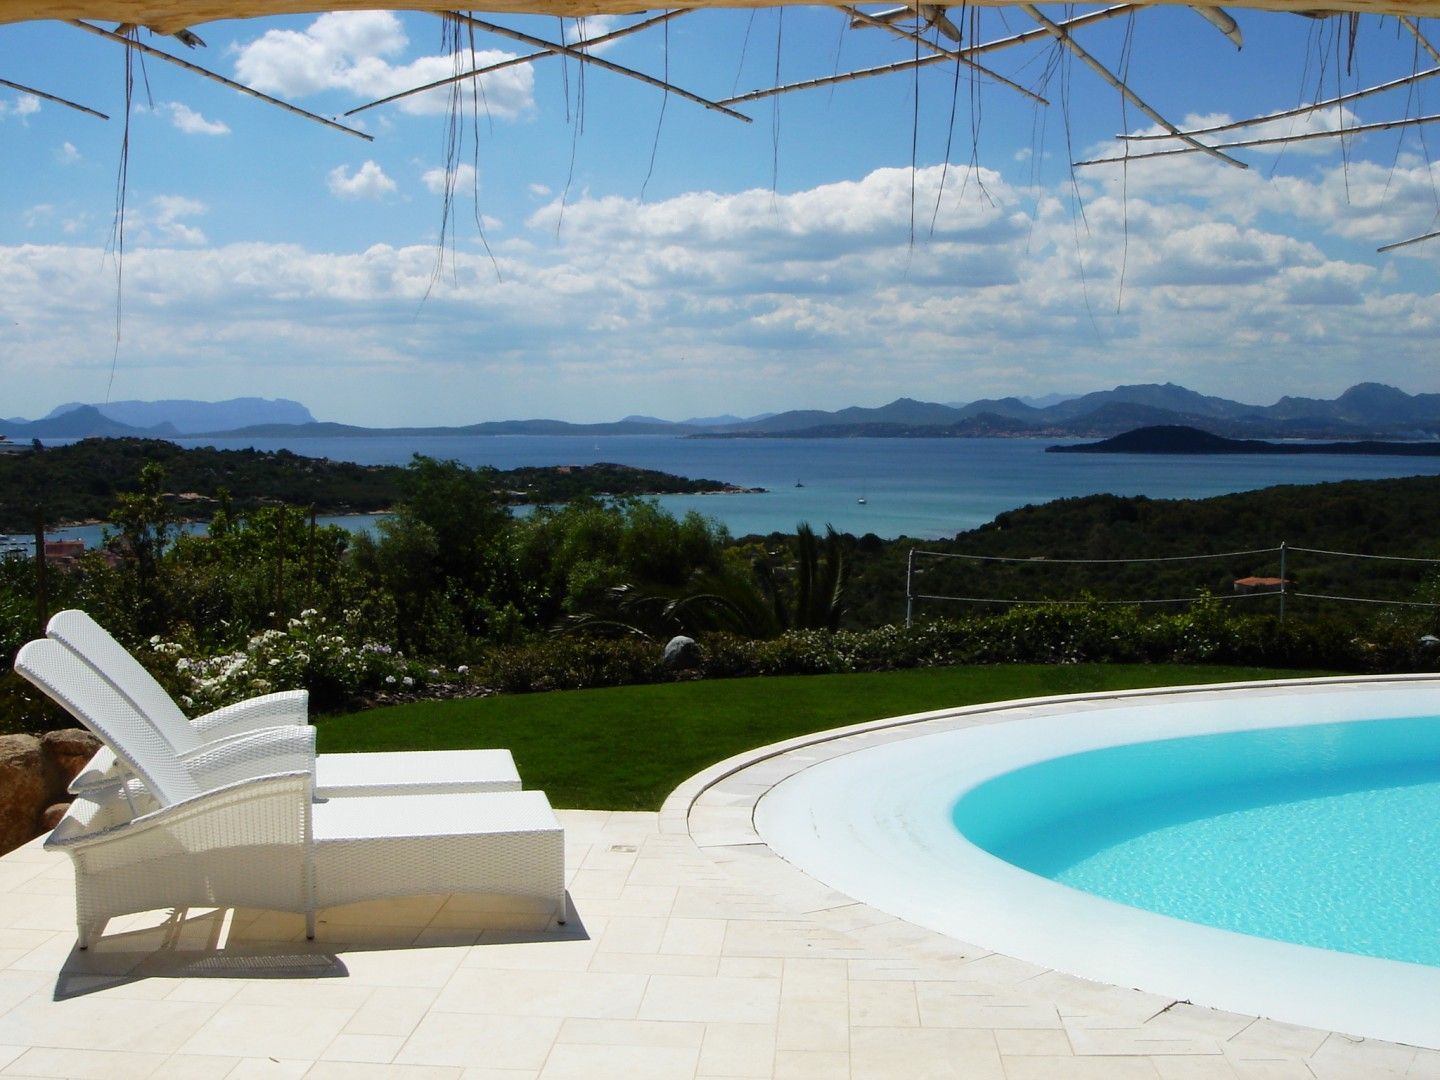 Orso felice Villa. The garden embraces the sea. When